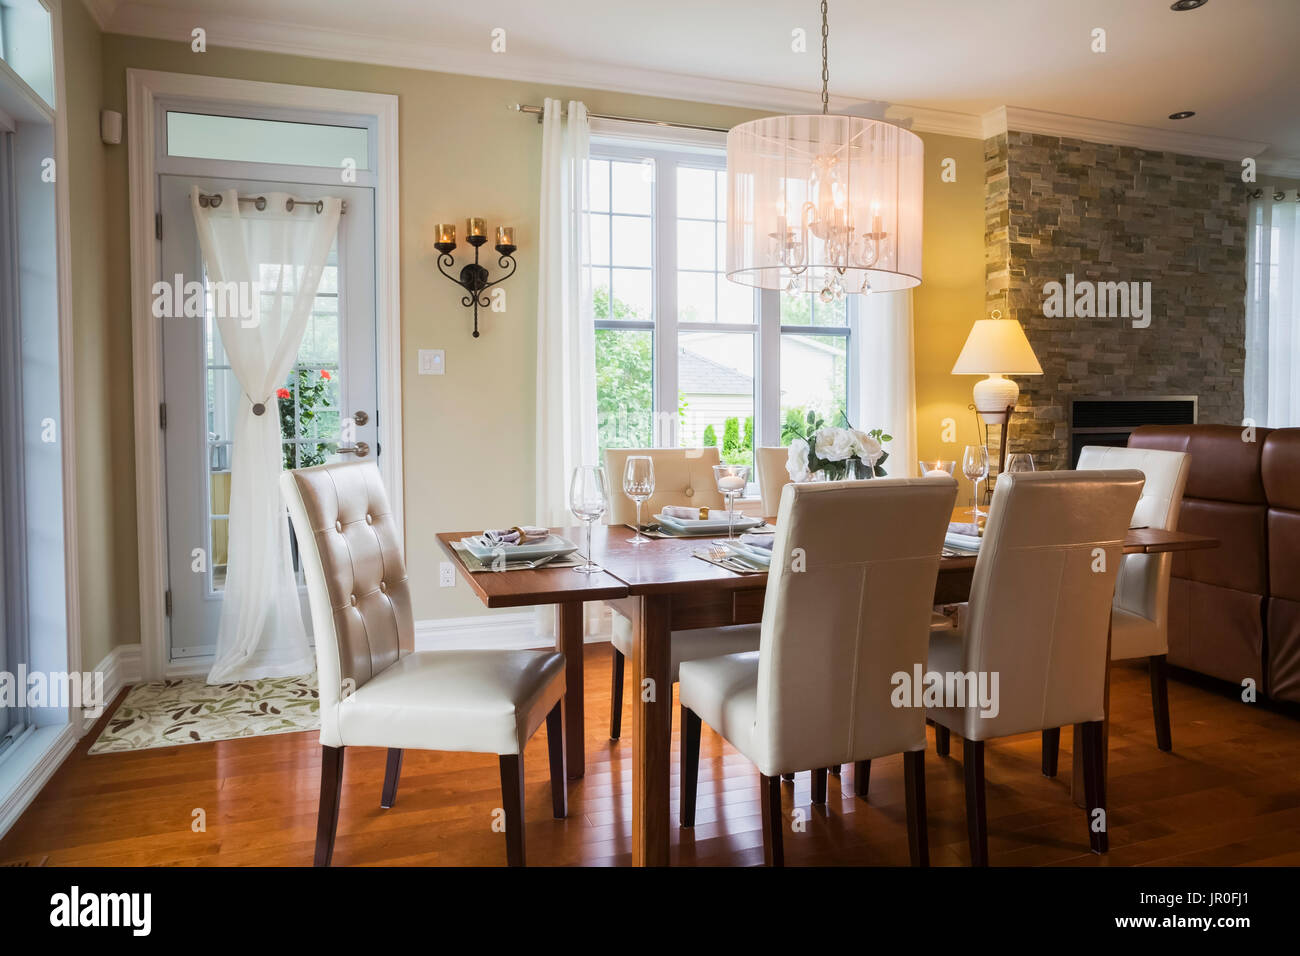 Dark Stained Oak Wood Table With White High-Back Leather And Wood Chairs In The Dining Room Inside A Contemporary Country Style Residential Home - Stock Image